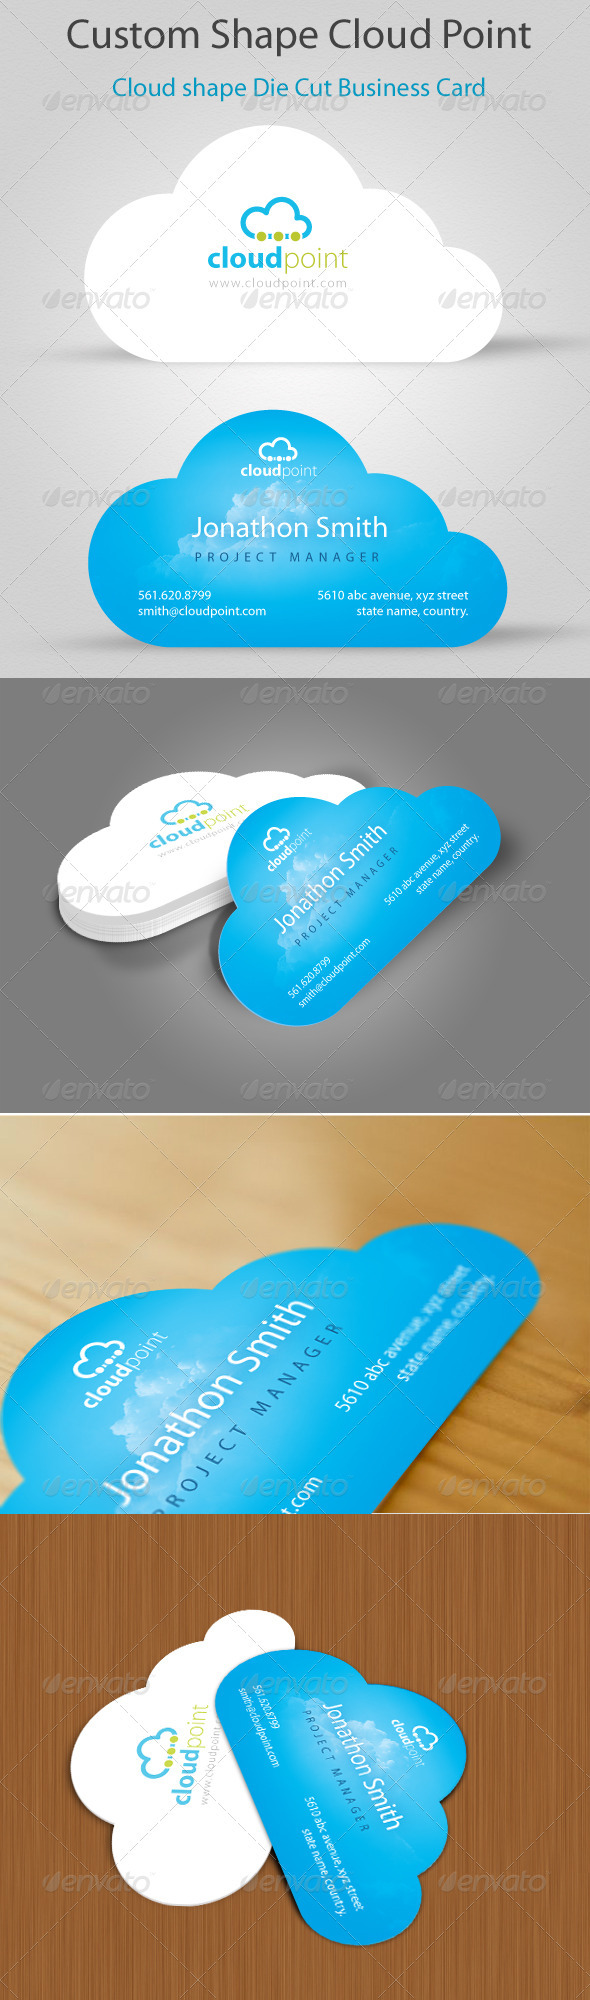 Cloud point custom shape die cut business card by dklipi cloud point custom shape die cut business card creative business cards reheart